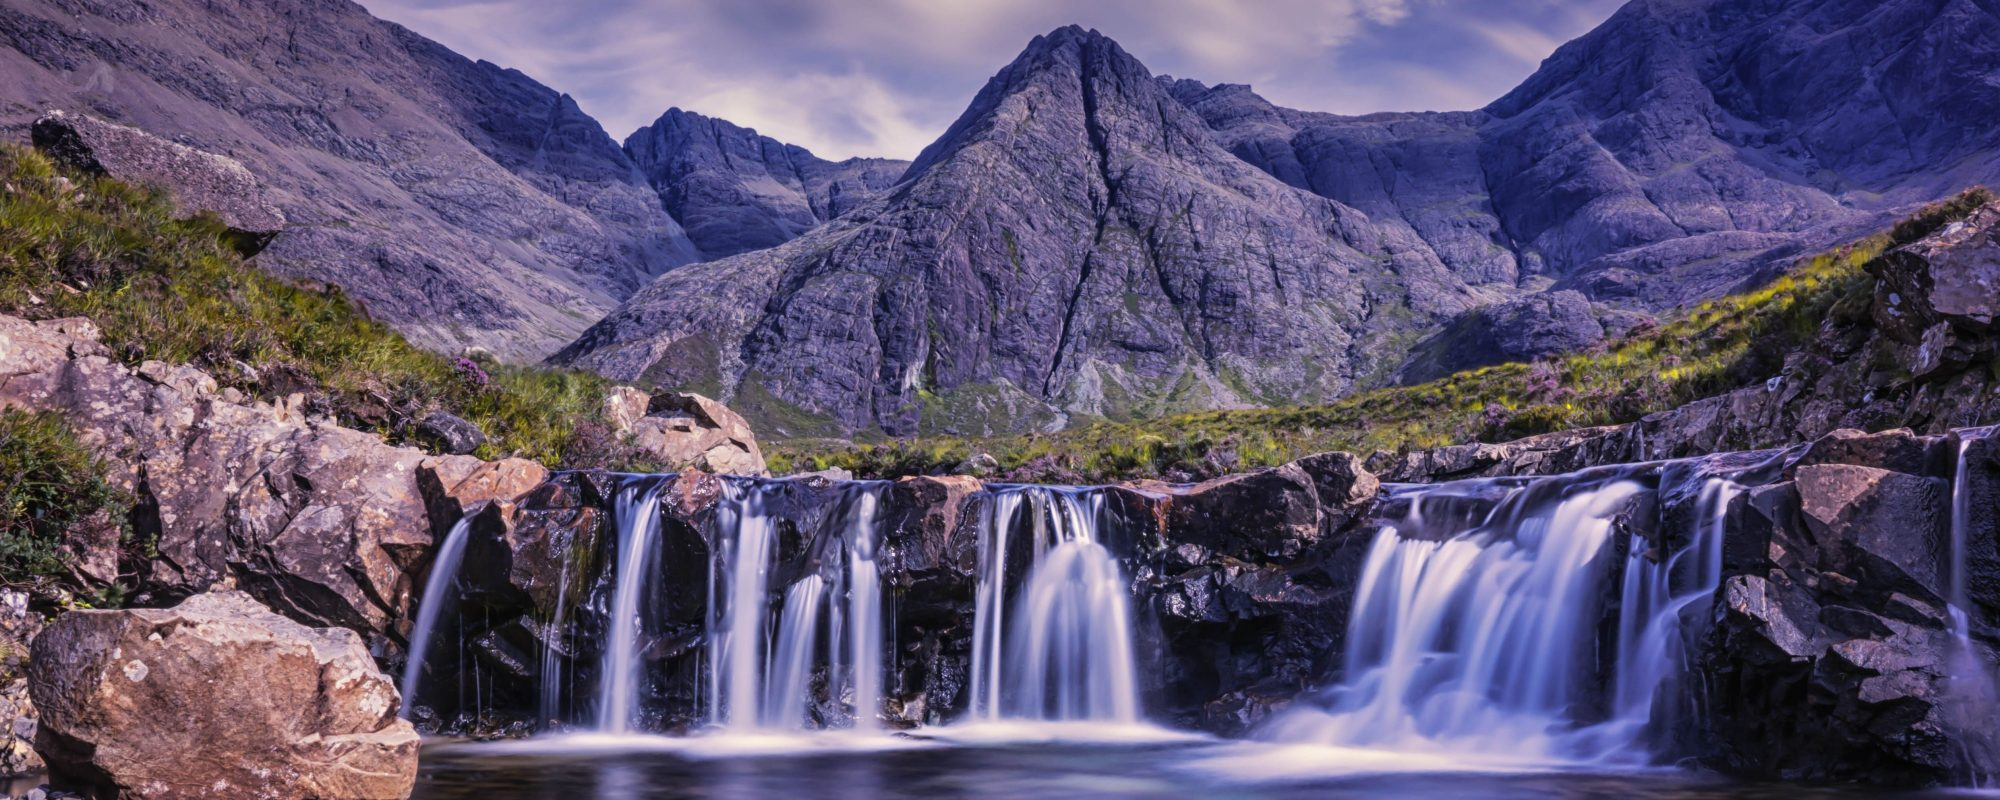 1 Day Isle of Skye with Fairy Pools Tour from Inverness